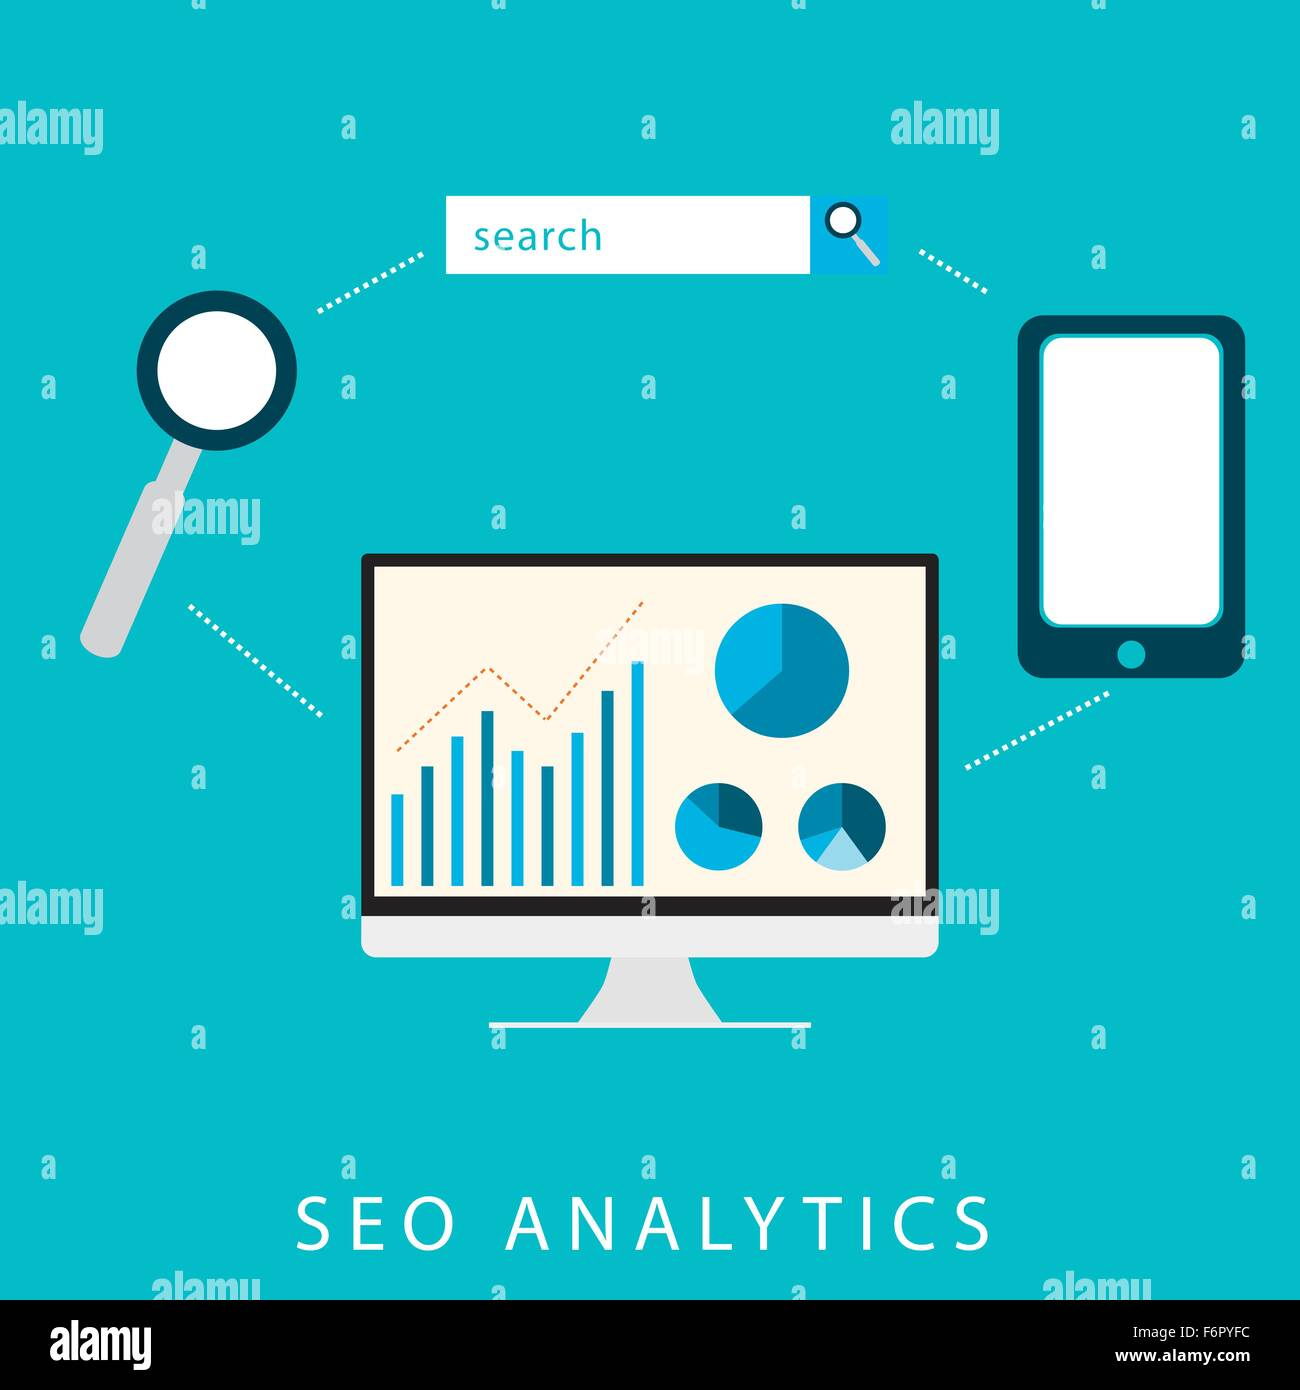 SEO analytics flat graphic design for search engine optimisation concept in vector - Stock Image